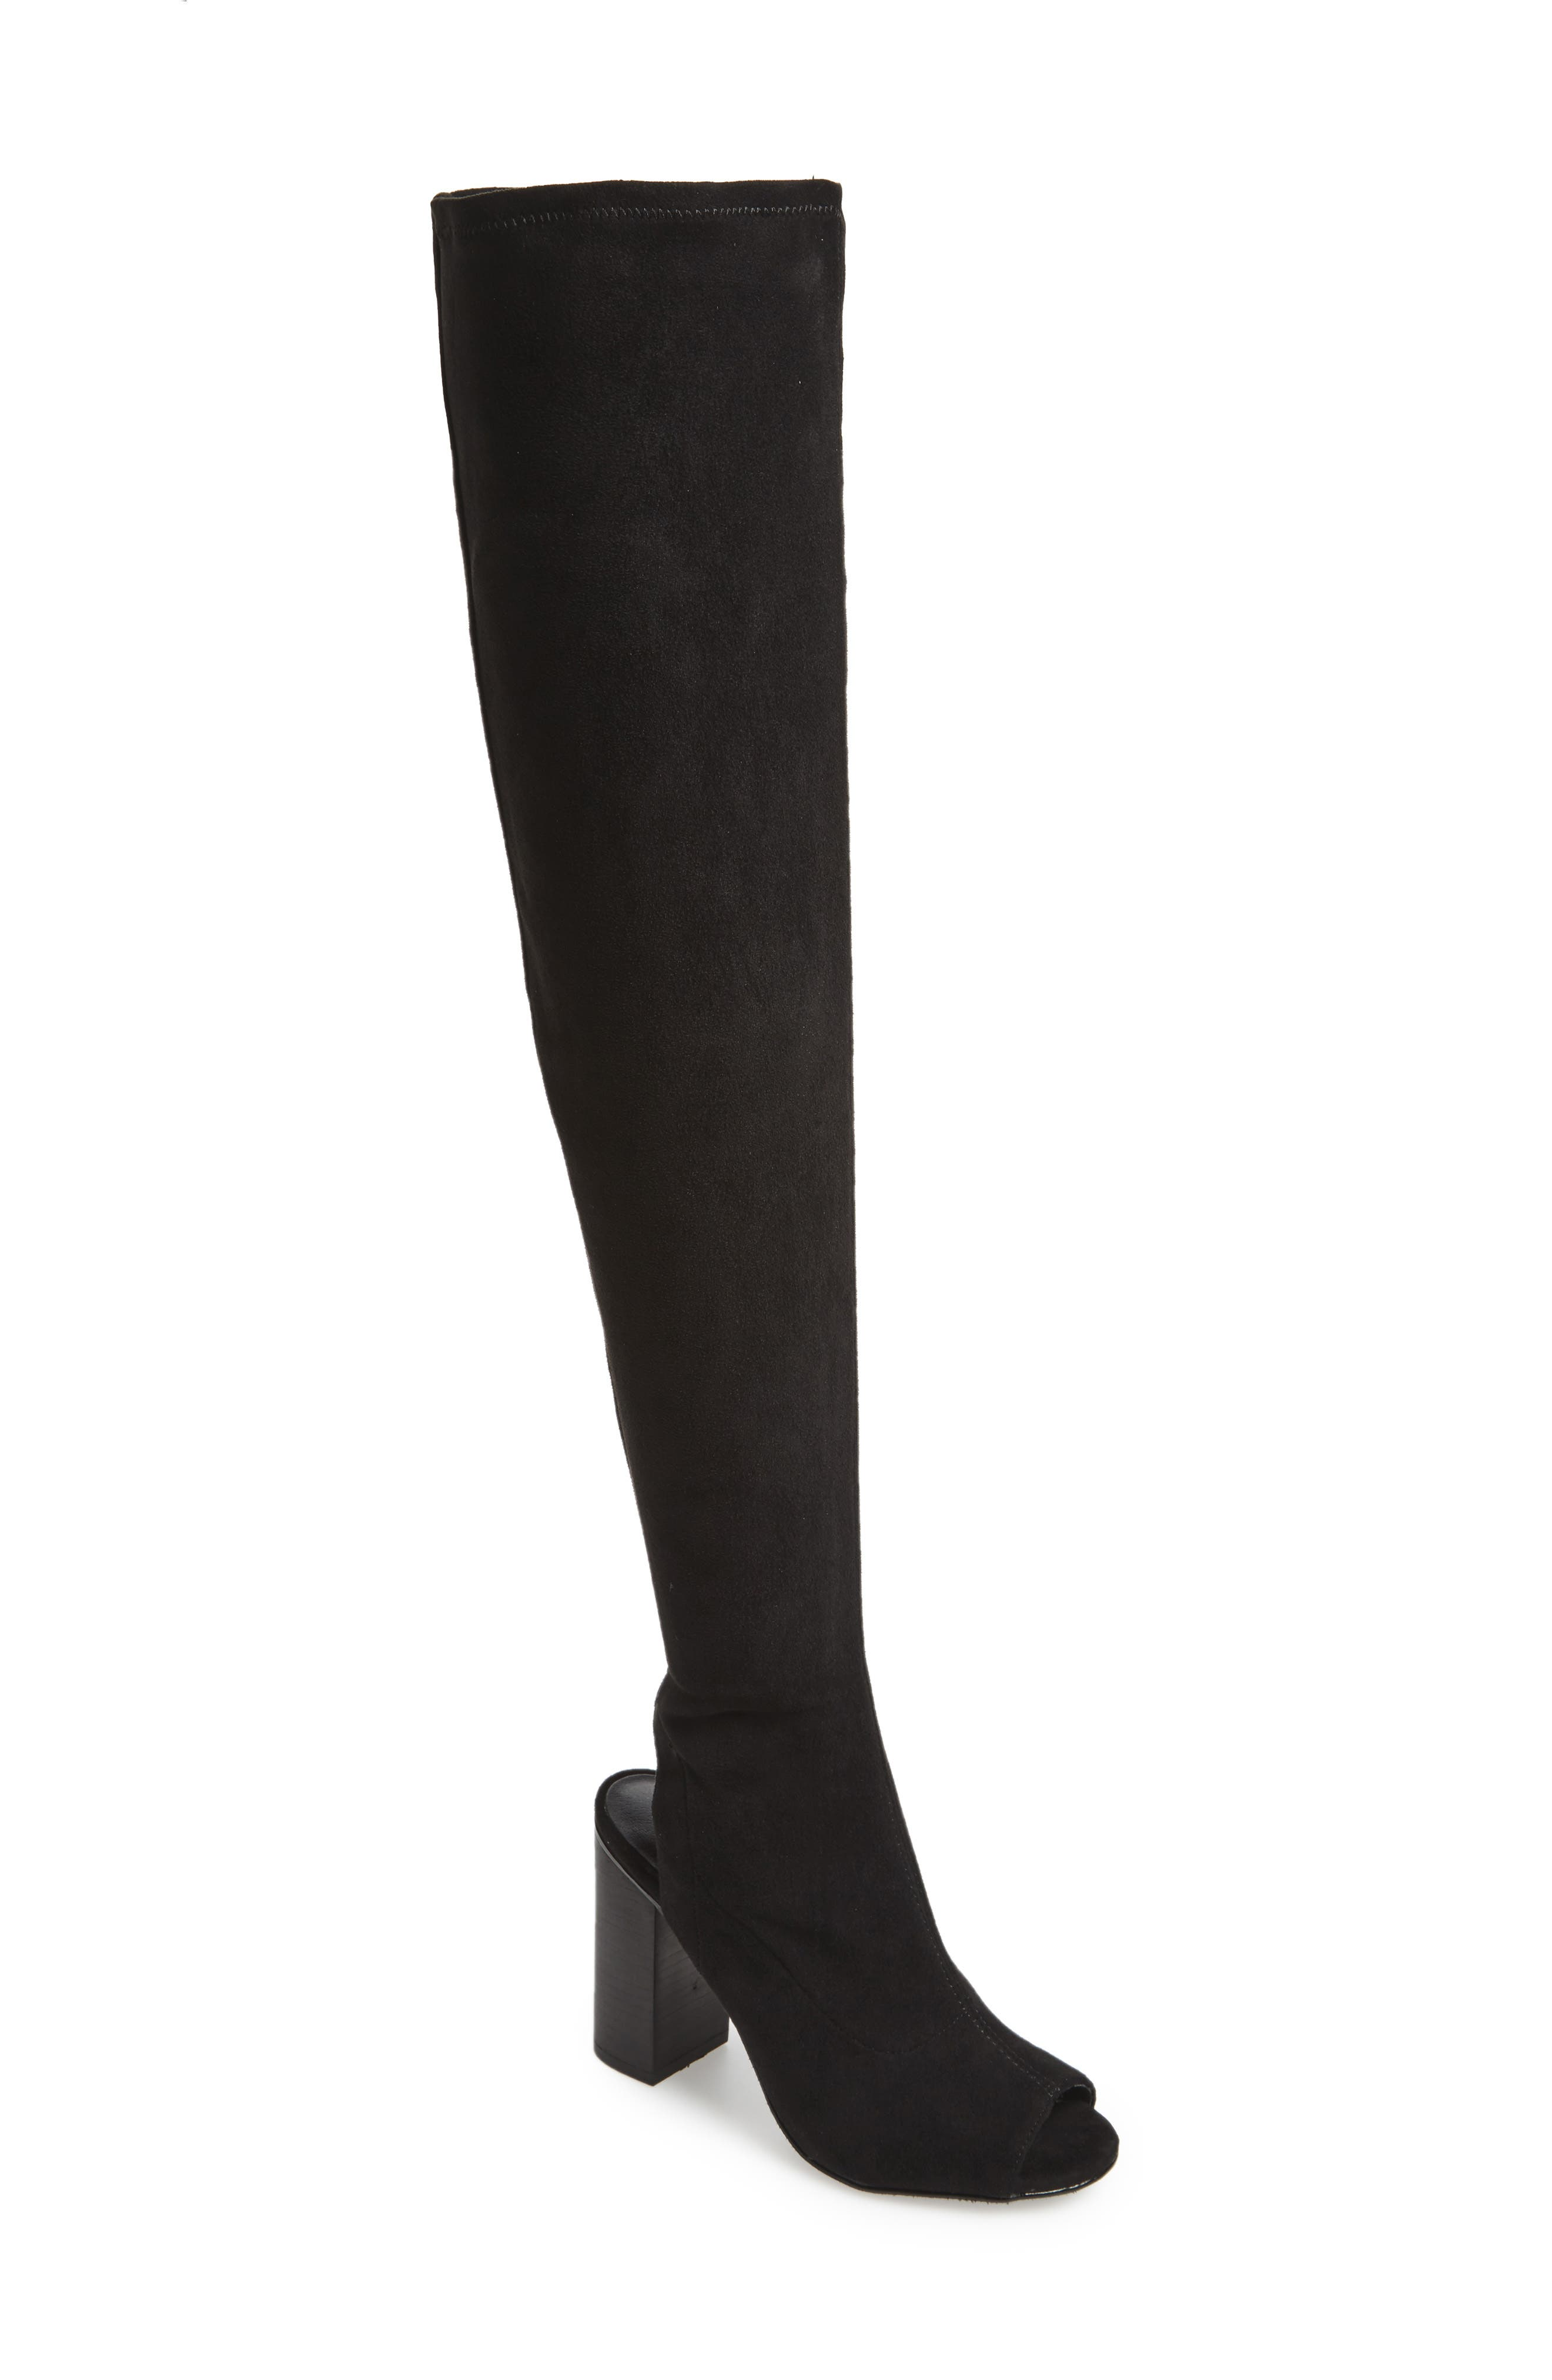 Robyn Cutout Over the Knee Boot,                             Main thumbnail 1, color,                             001